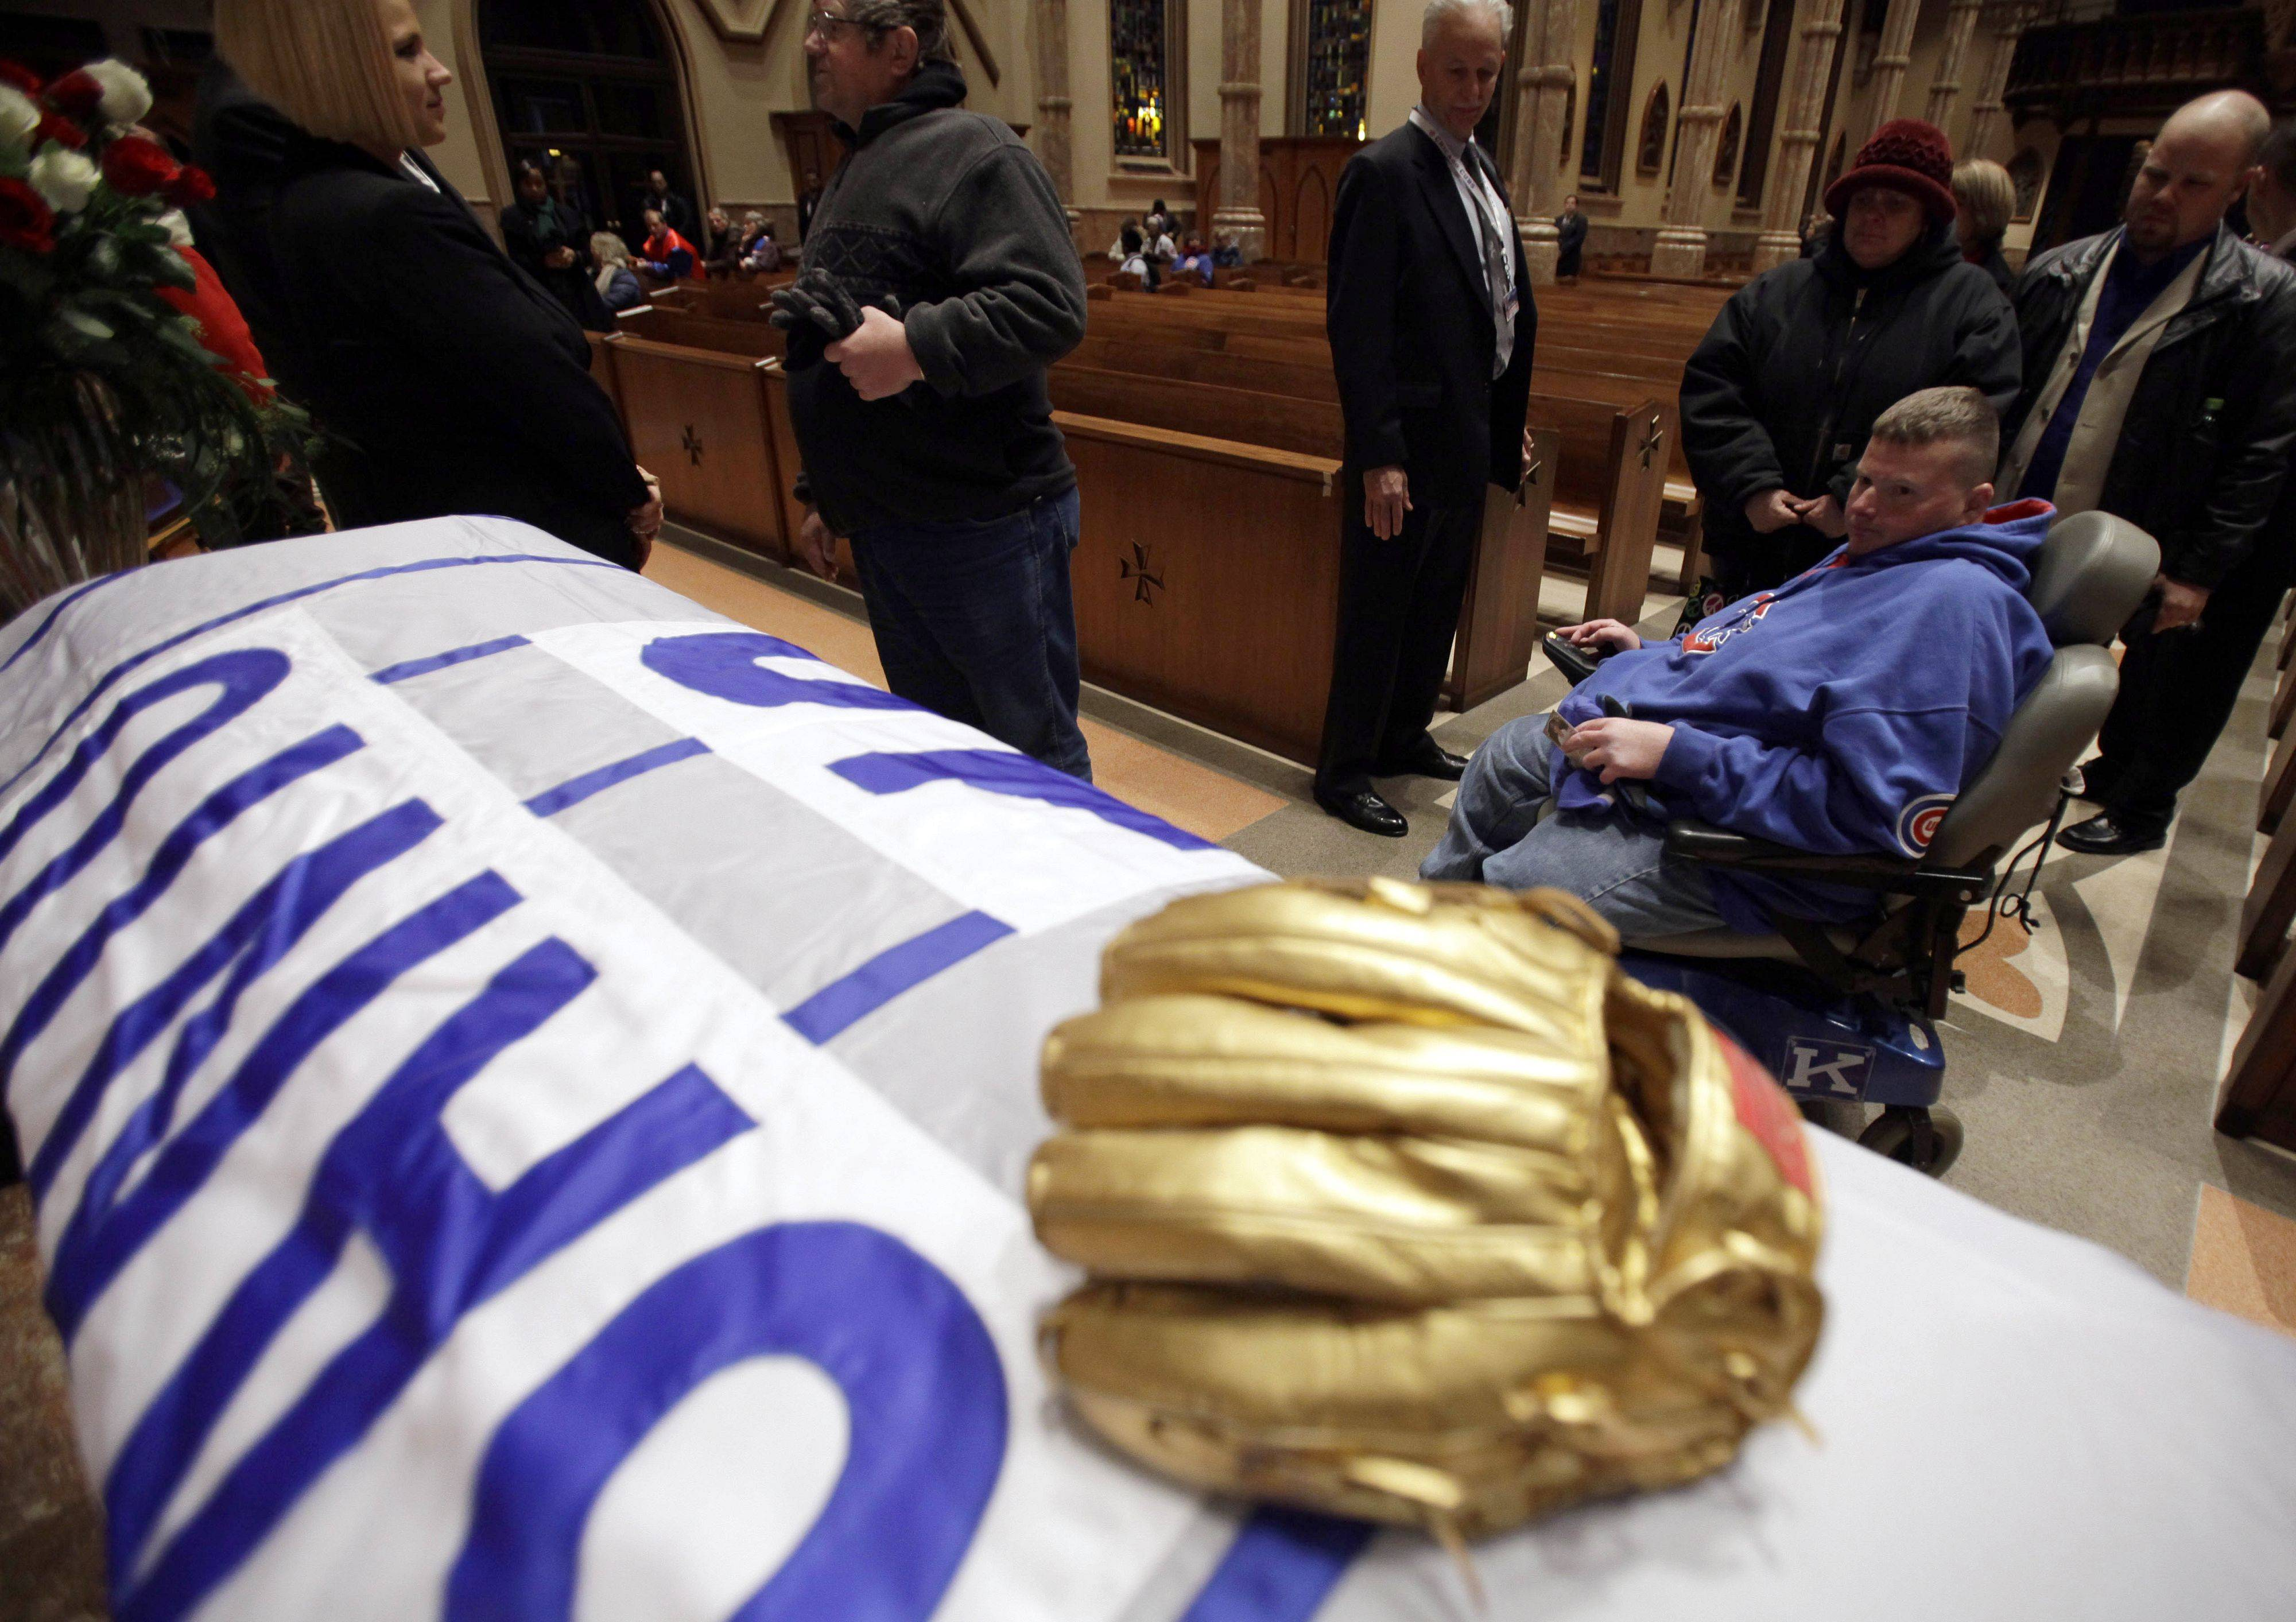 Chicago Cubs fans line up during the visitation for Chicago Cubs great and longtime radio announcer Ron Santo at Holy Name Cathedral, Thursday, Dec. 9, 2010, in Chicago. The nine-time all-star died Thursday, Dec. 2 in an Arizona hospital from complication of bladder cancer. He was 70. (AP Photo/Nam Y. Huh, Pool)